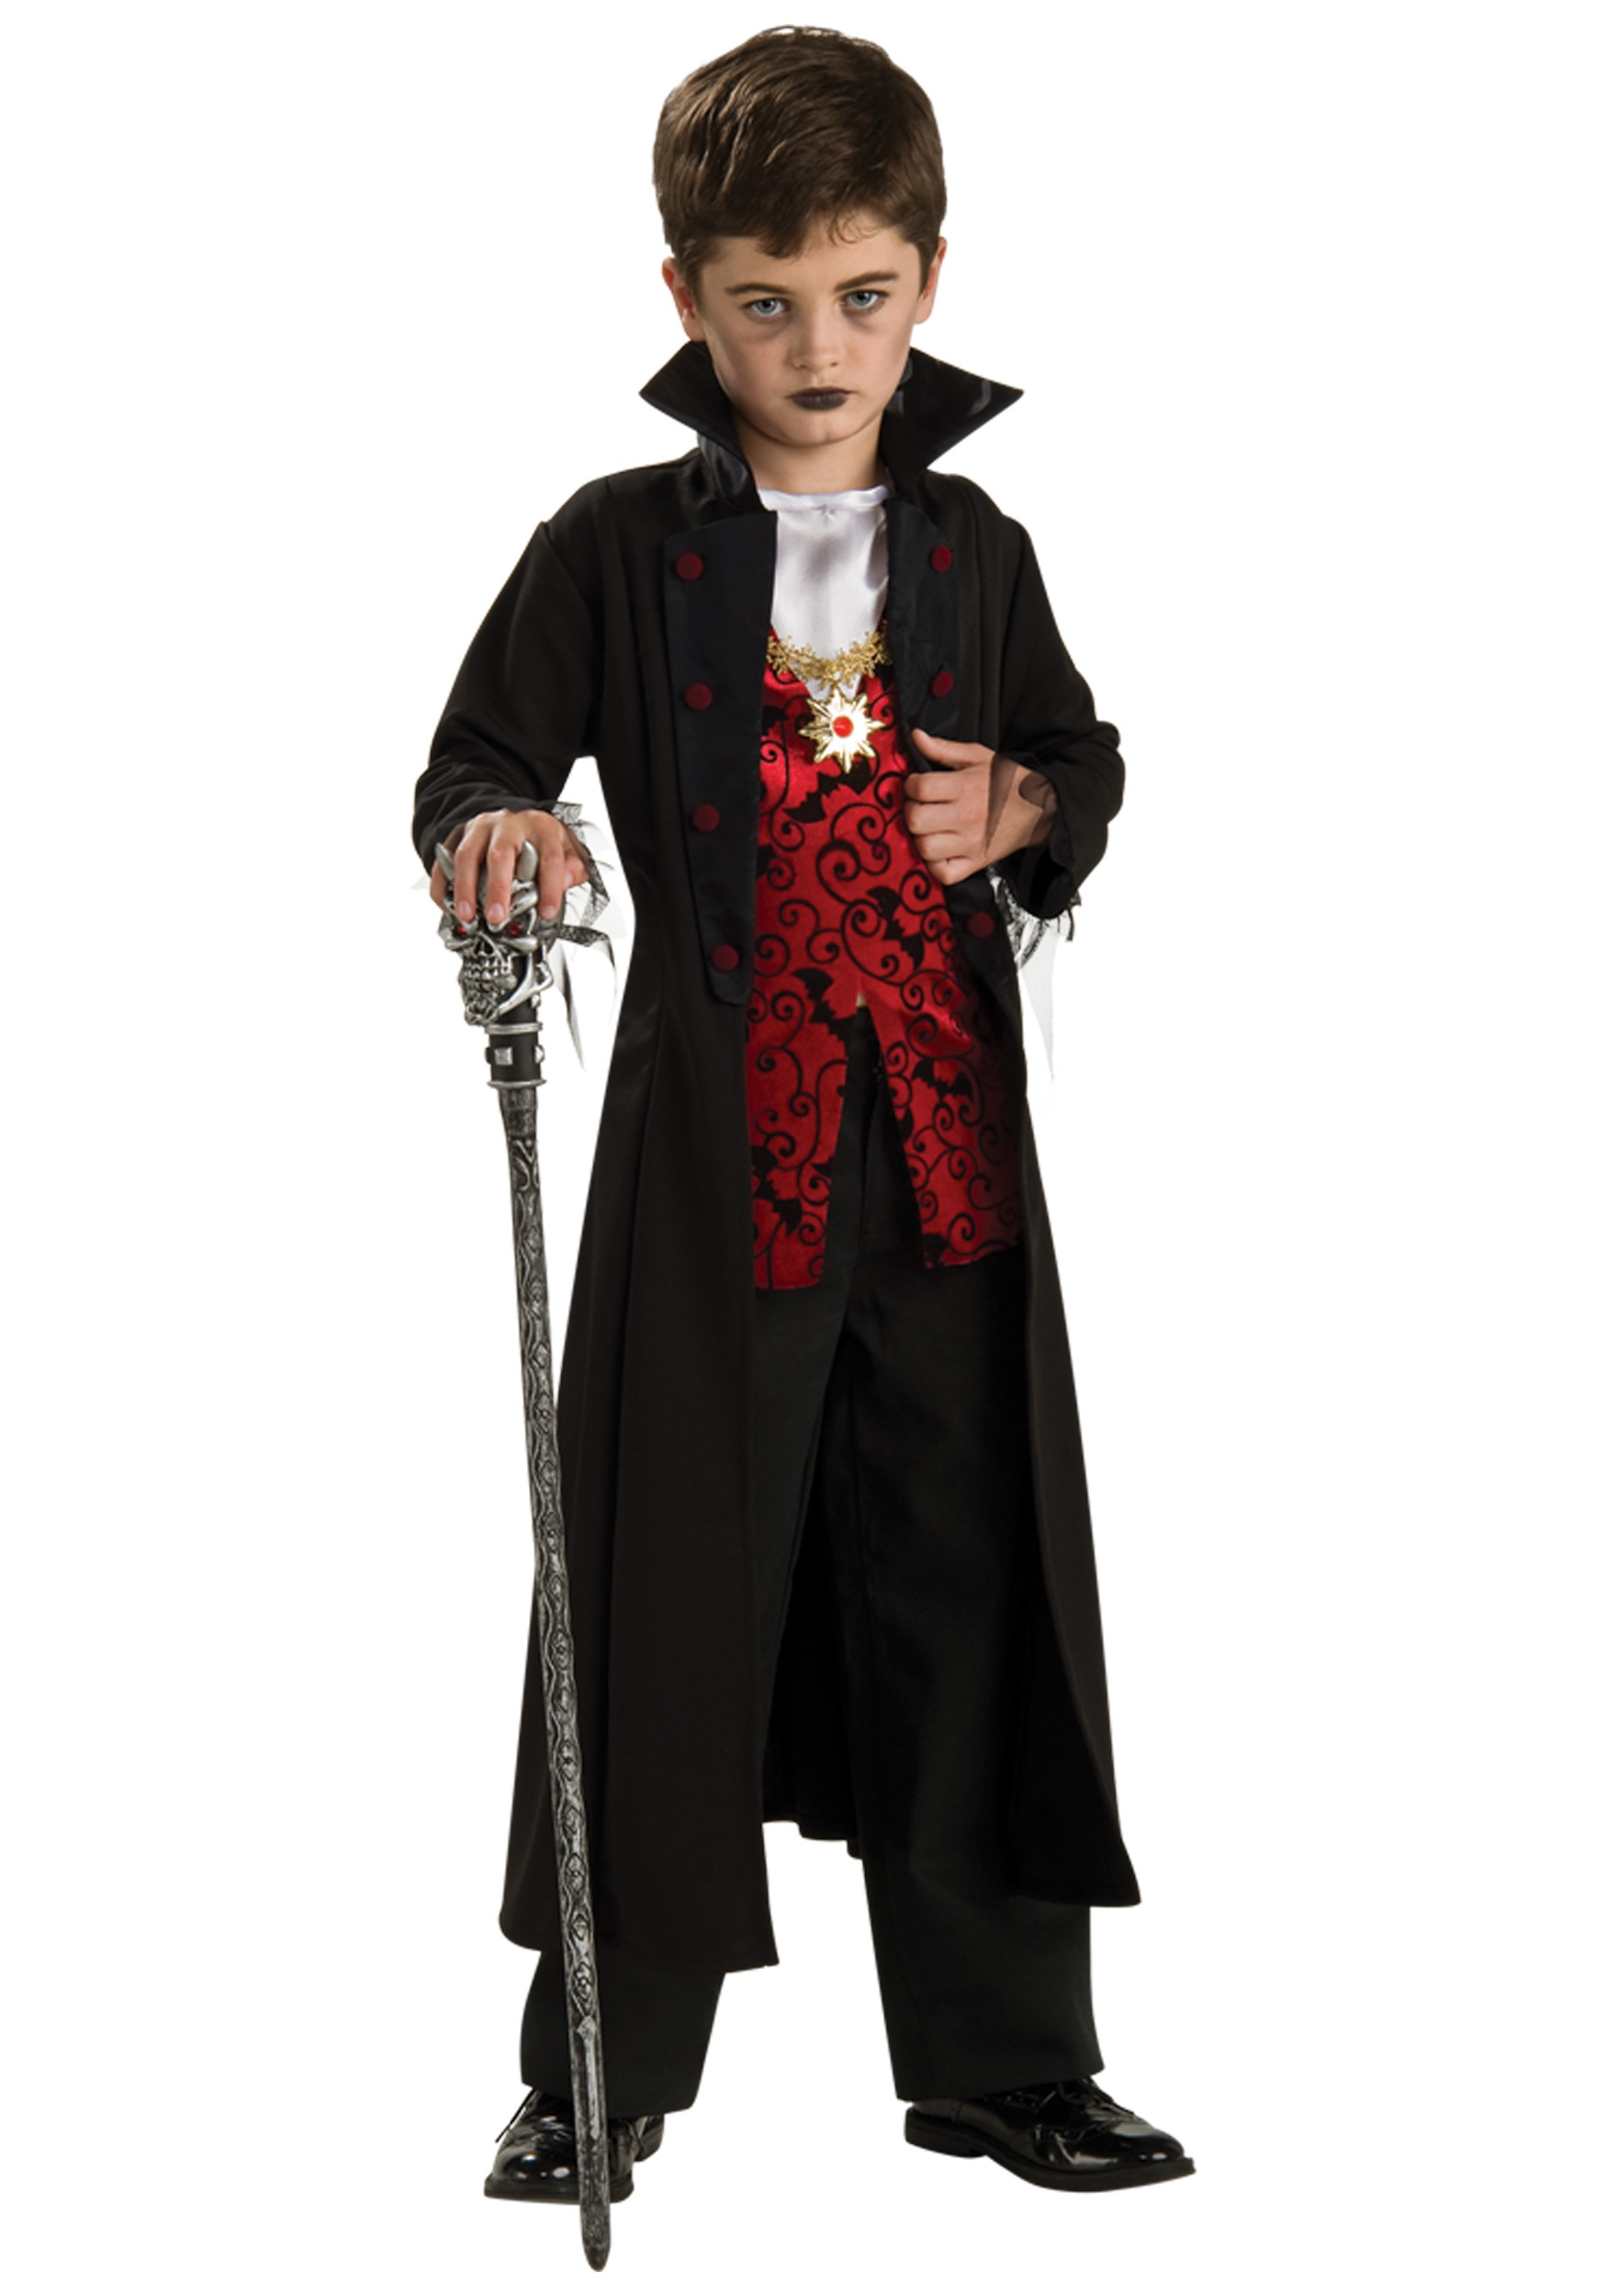 Halloween Vampire Costume Kids.Boys Royal Vampire Costume